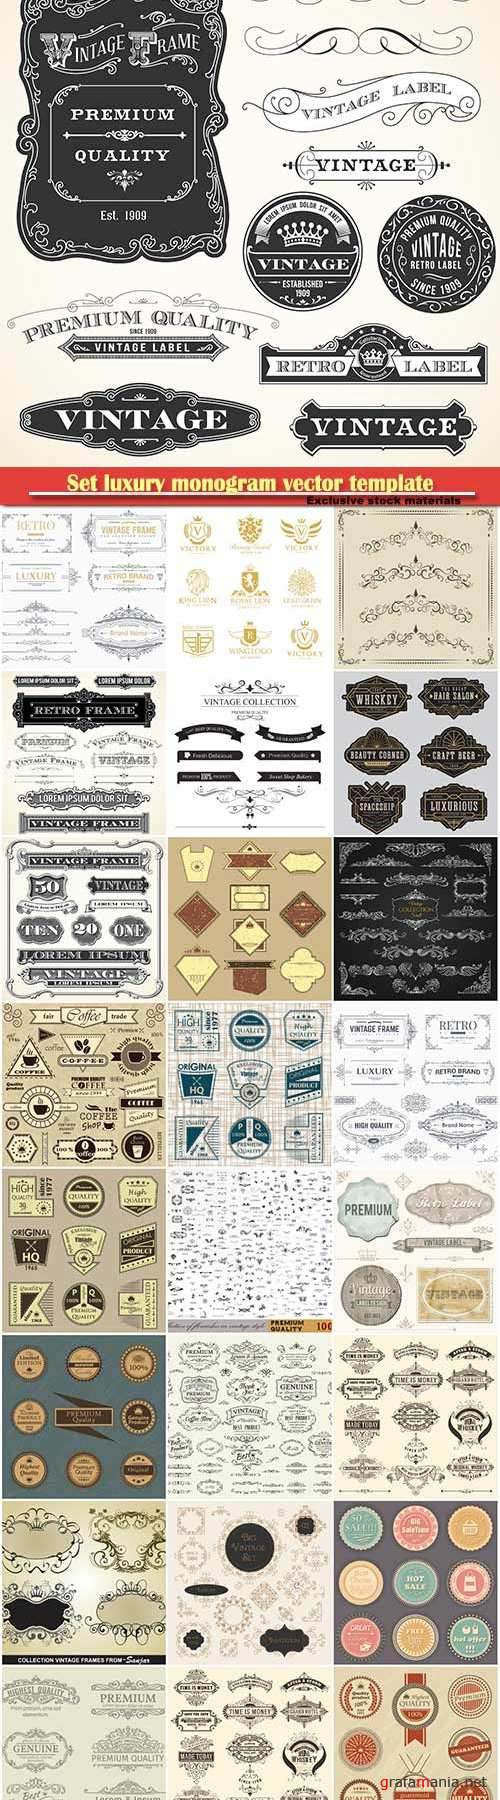 Set luxury monogram vector template, logos, badges, symbols # 10